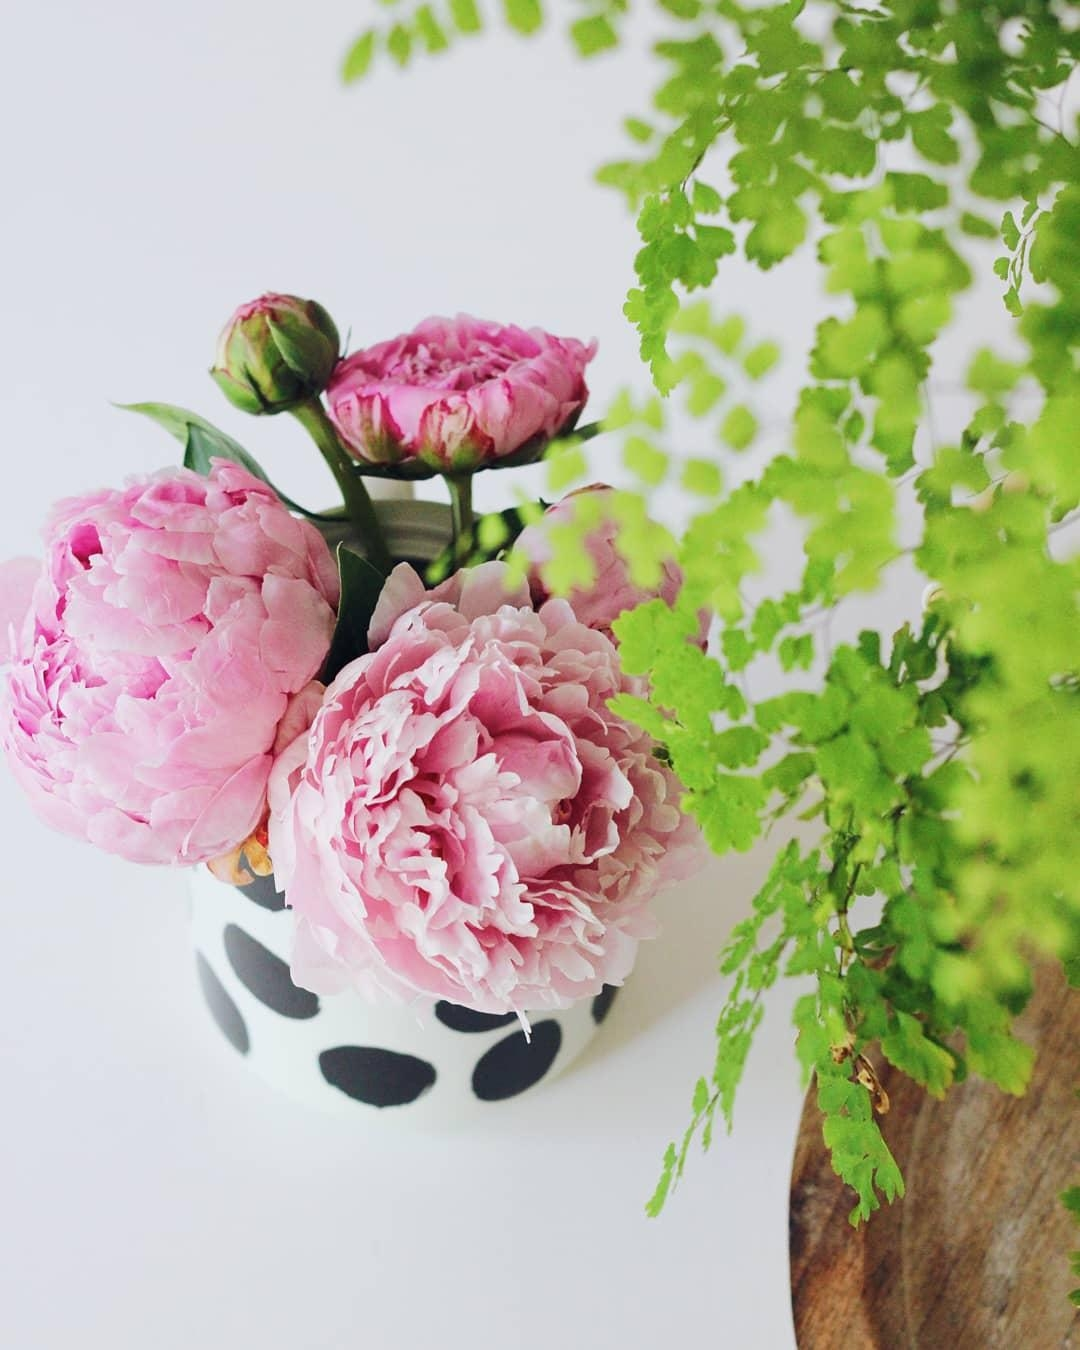 #pfingstrosen #peonies #flowers #urbanjungle